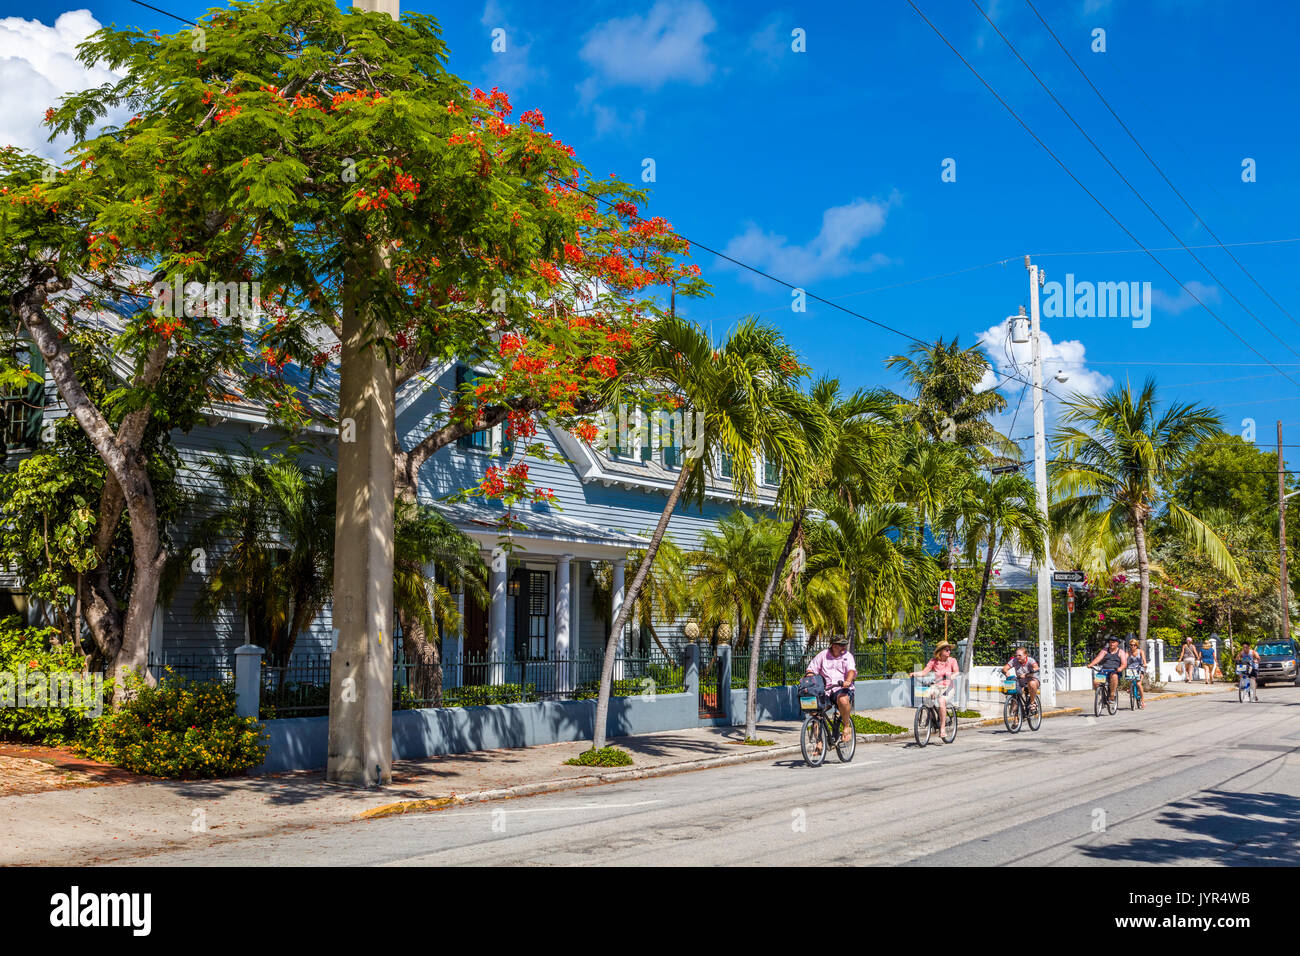 People riding bikes in Key West Florida - Stock Image